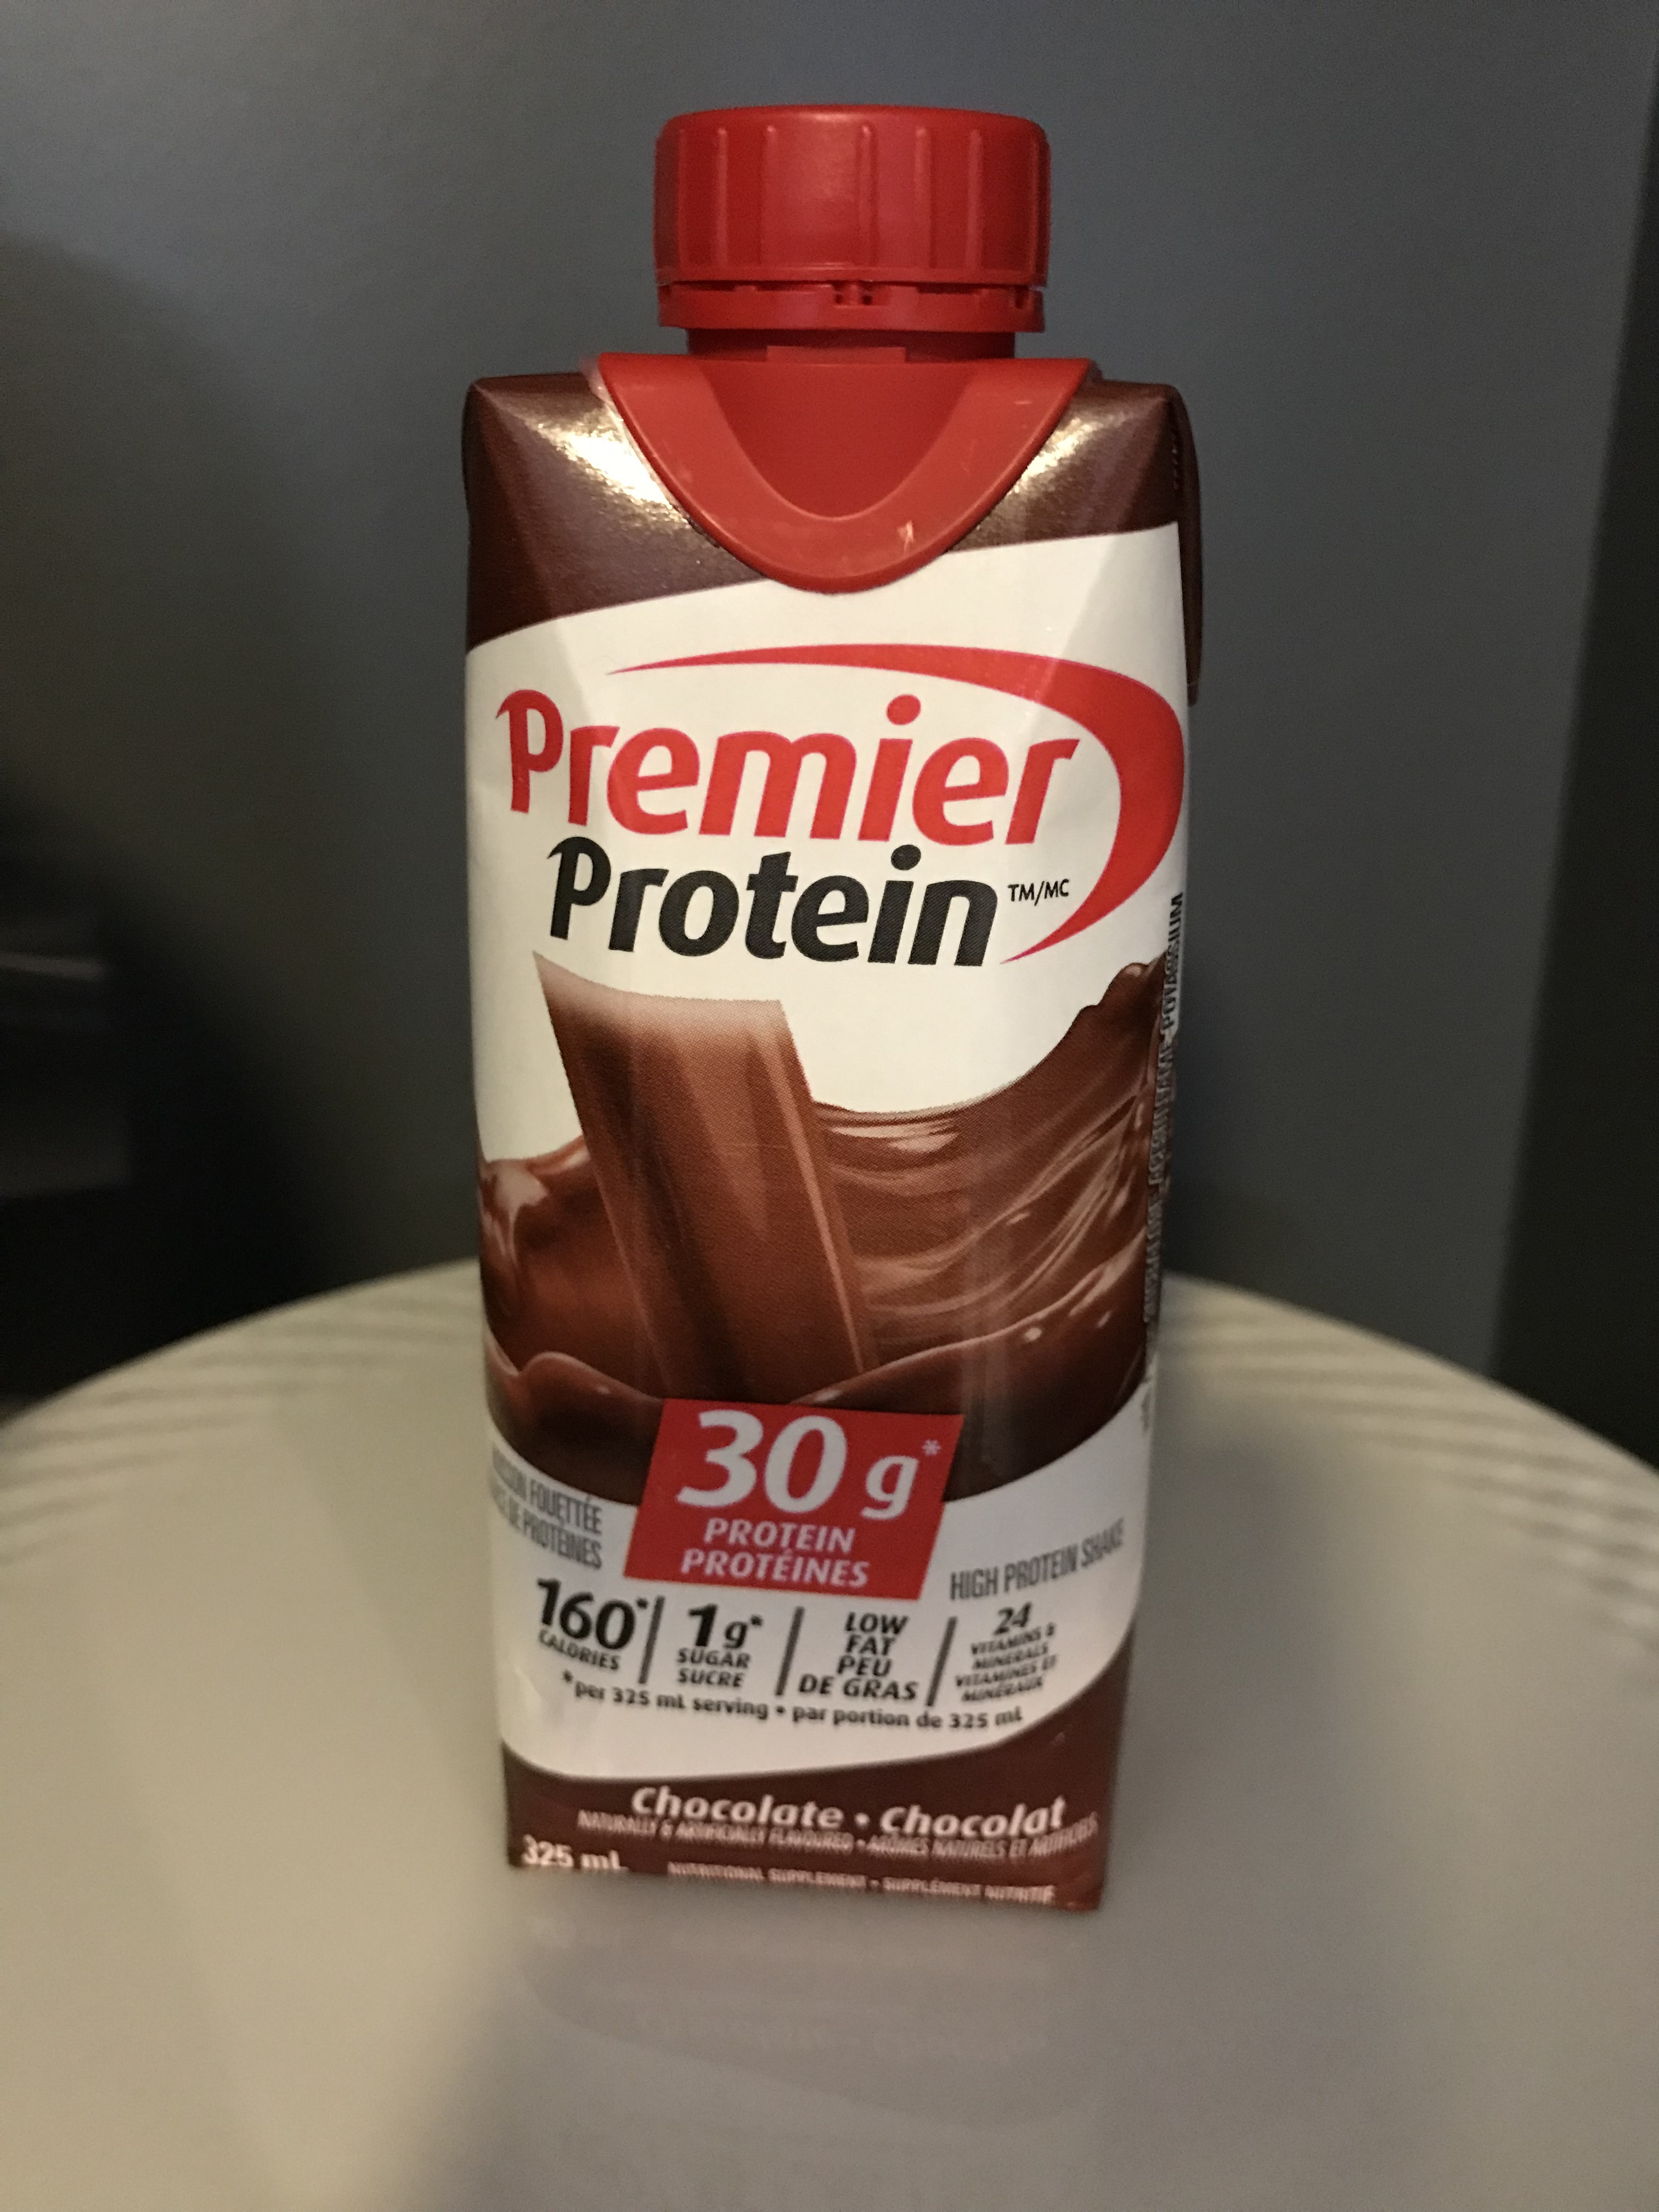 Premier Protein Chocolate Shake reviews in Dietary Supplements, Nutrition - ChickAdvisor